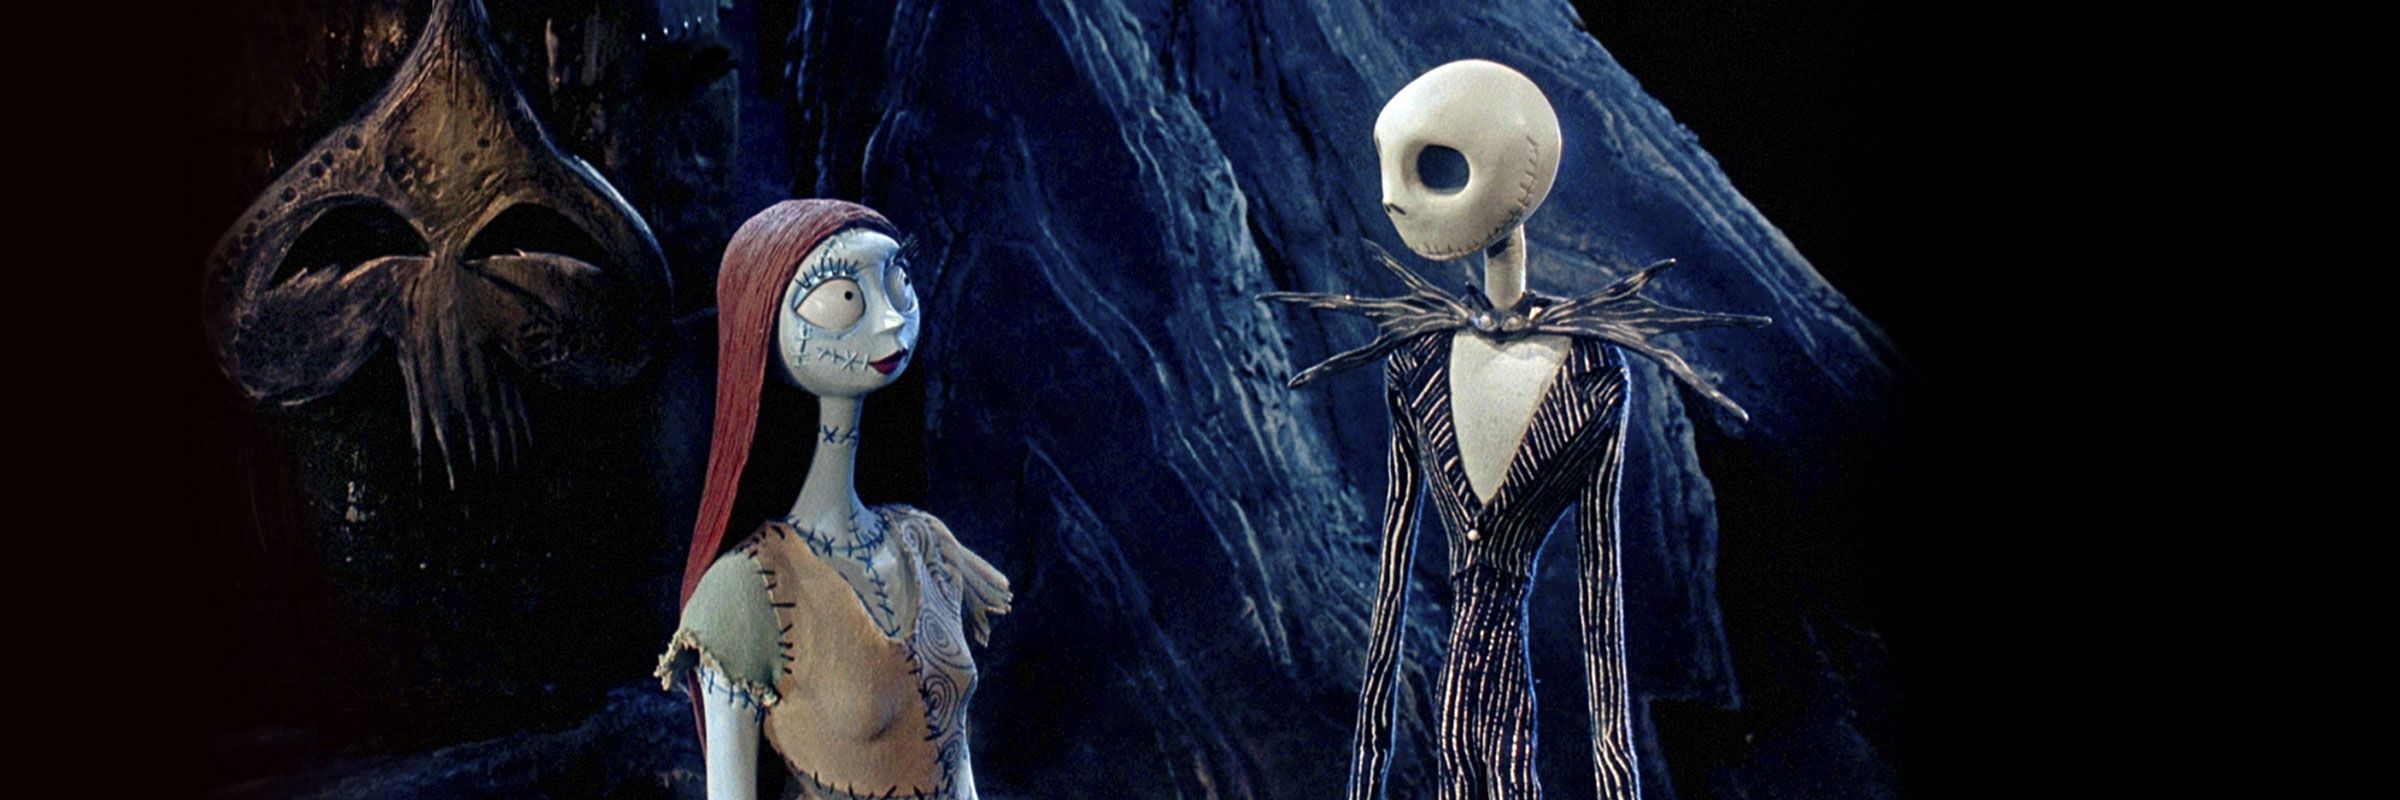 Tim Burton Nightmare Before Christmas Artwork.Tim Burton S The Nightmare Before Christmas Trailer